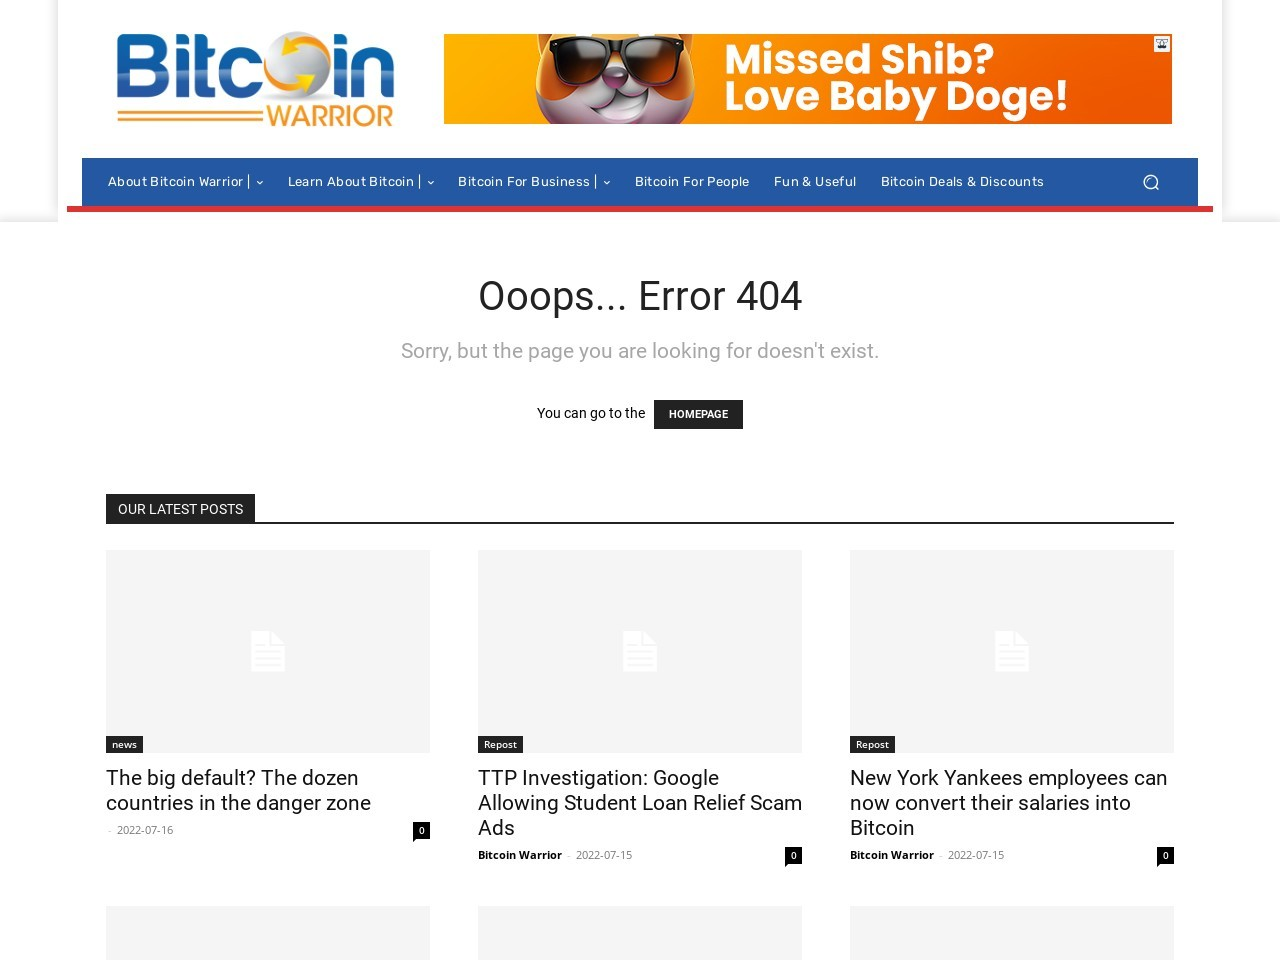 Litecoin [LTC] doesn't need Bitcoin [BTC] to be relevant, it stands tall all by itself says director of Litecoin Foundation